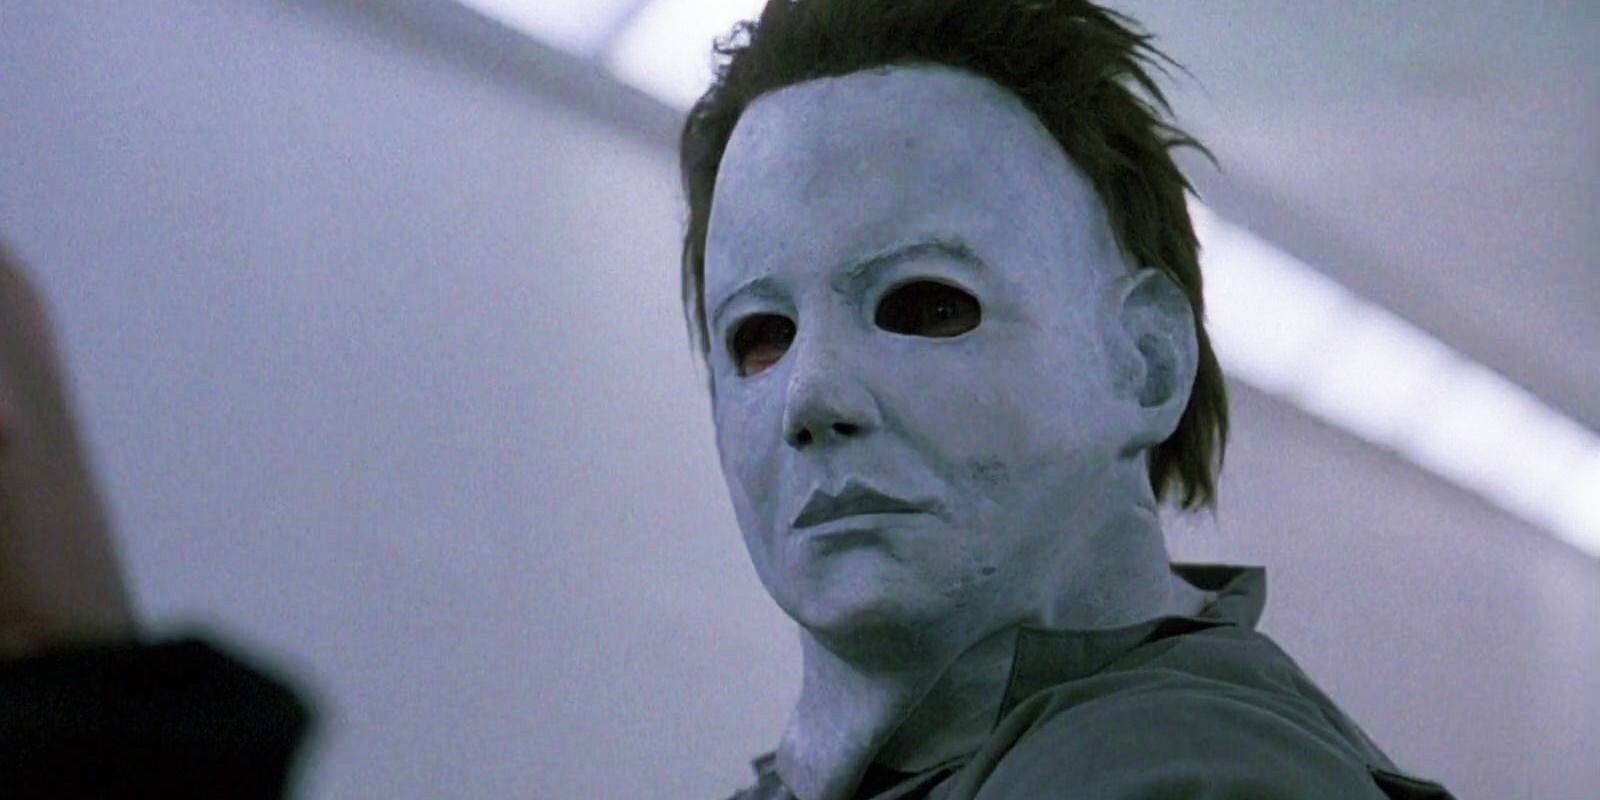 Thorn Cult In Halloween 2020 Halloween: How Long Michael Myers Really Had The Thorn Curse